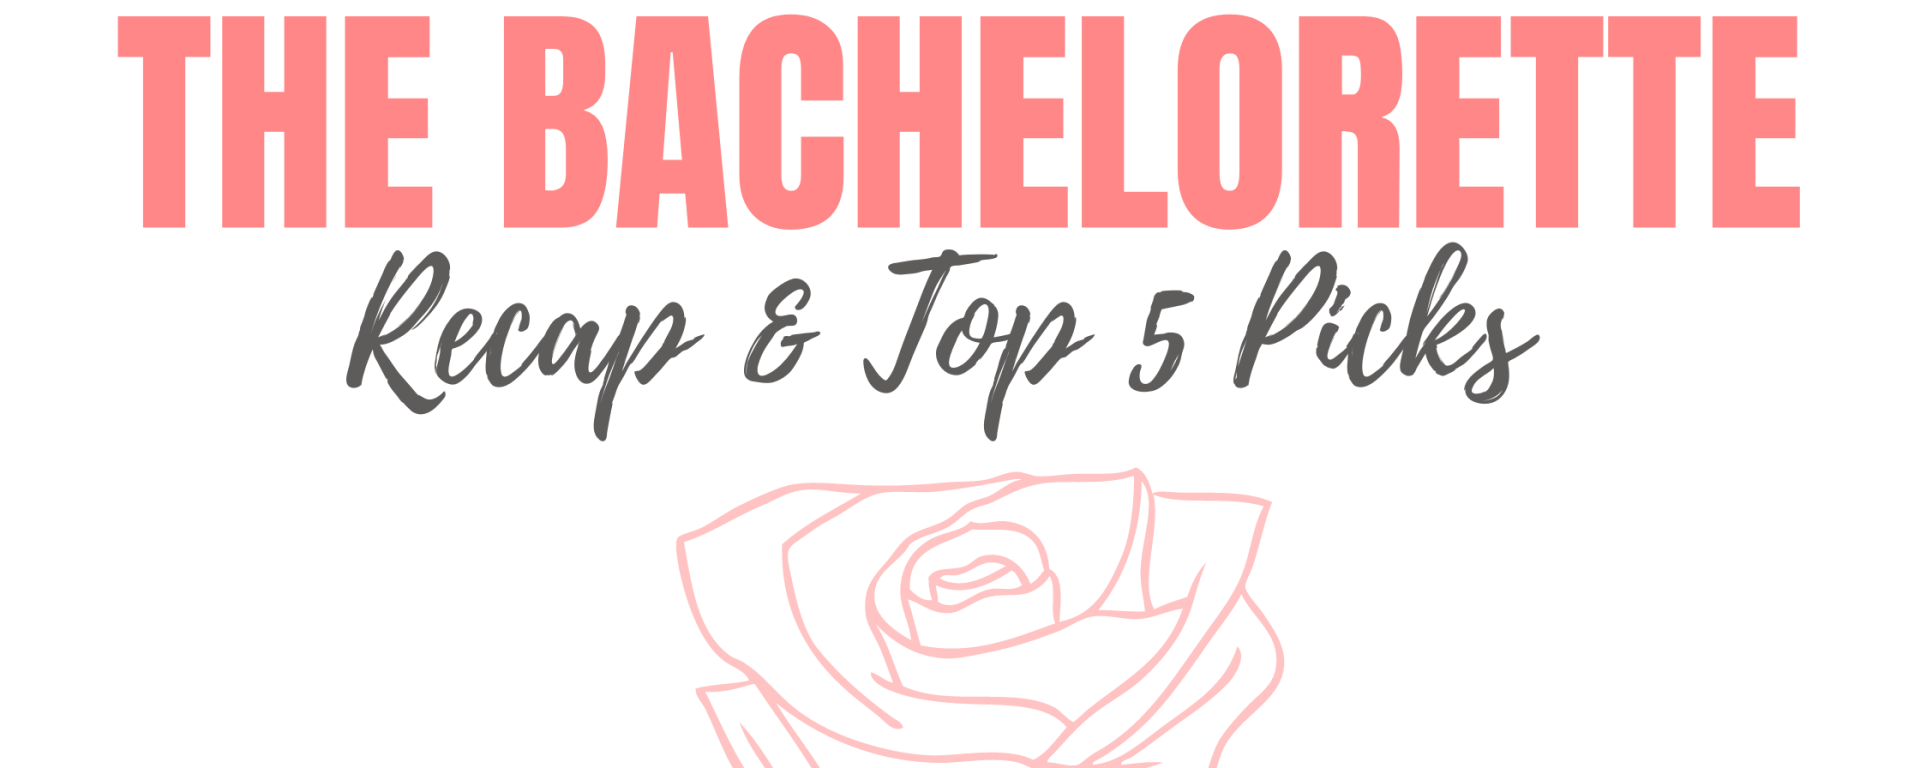 The Bachelorette (in pink letters) recap & top 5 picks (in grey letters) Drawing of a pink rose underneath